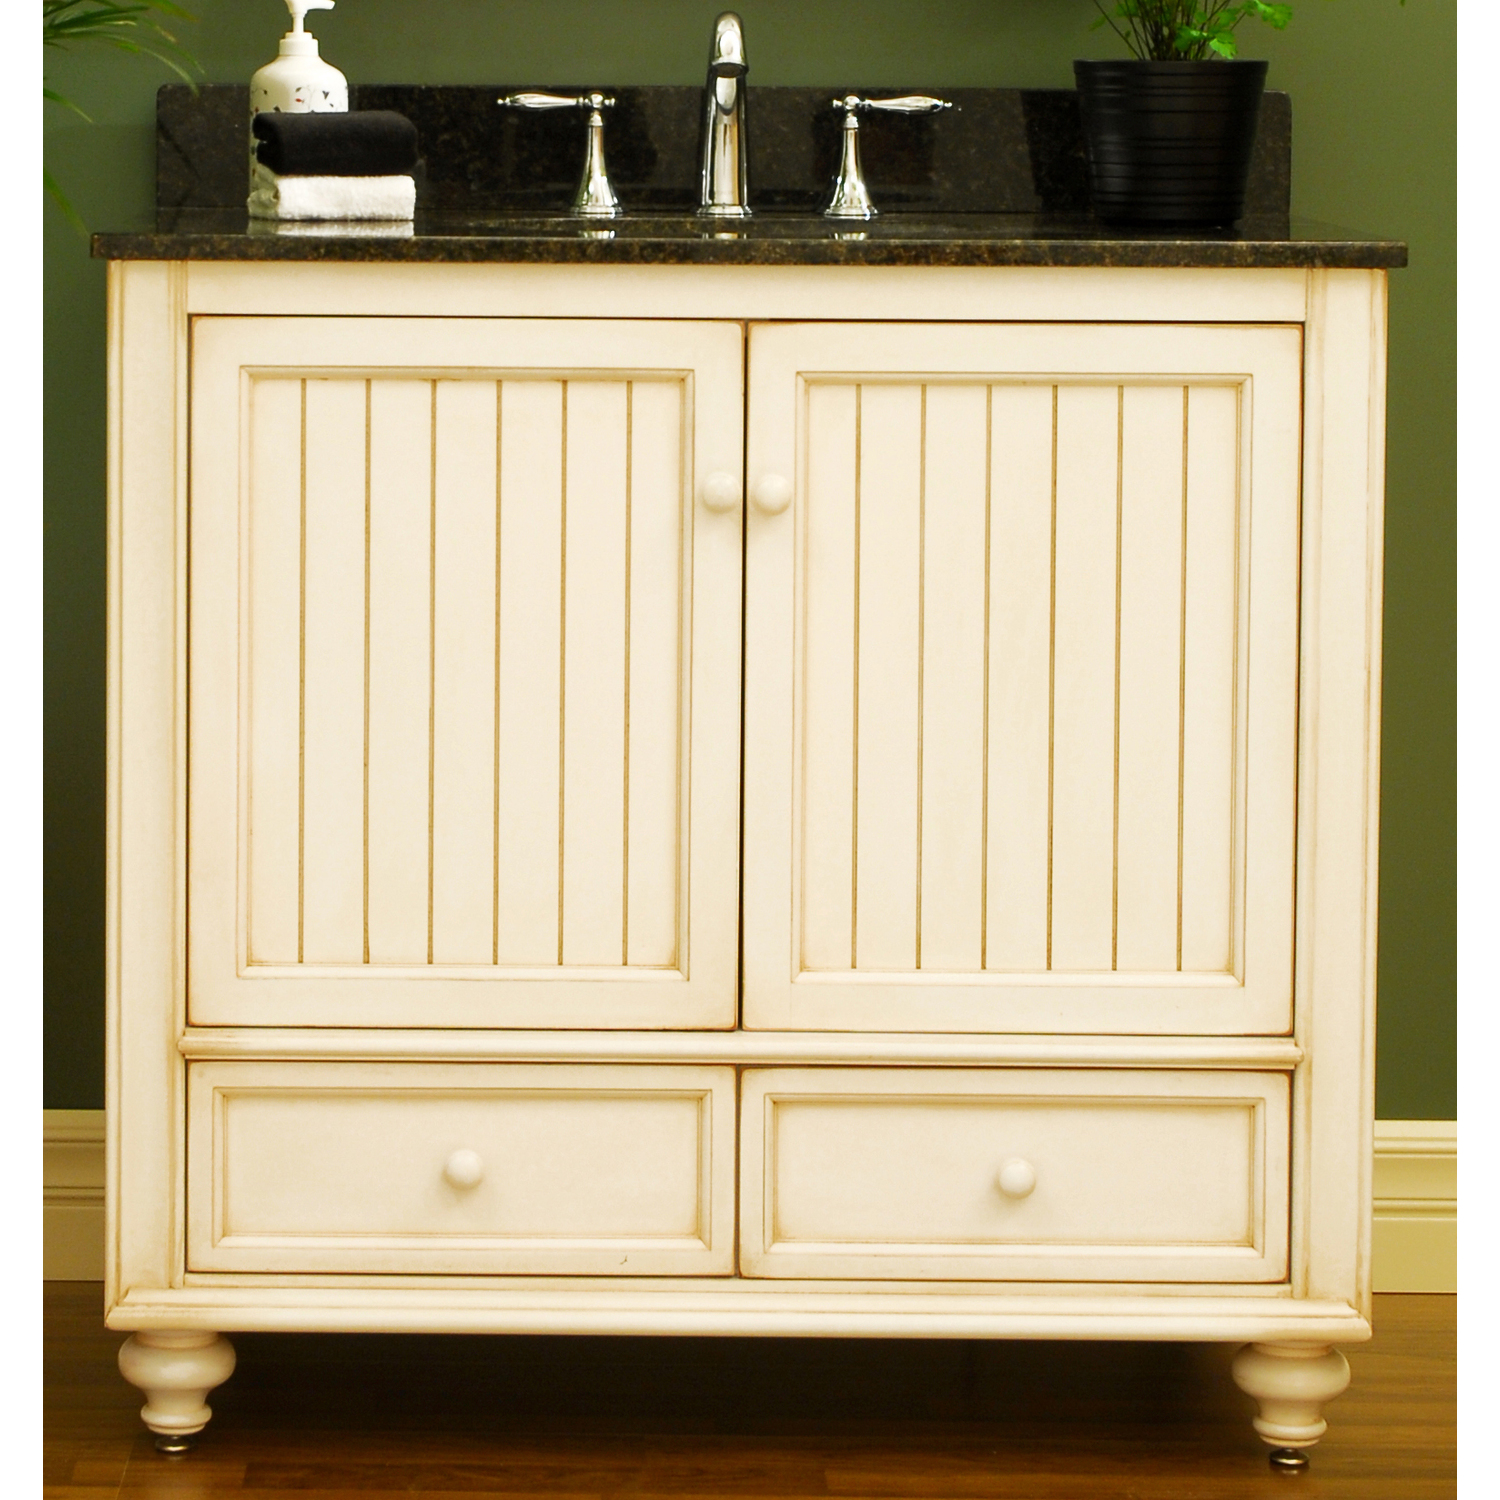 A selection of white bathroom vanities by sagehill designs for Bathroom vanity cabinets